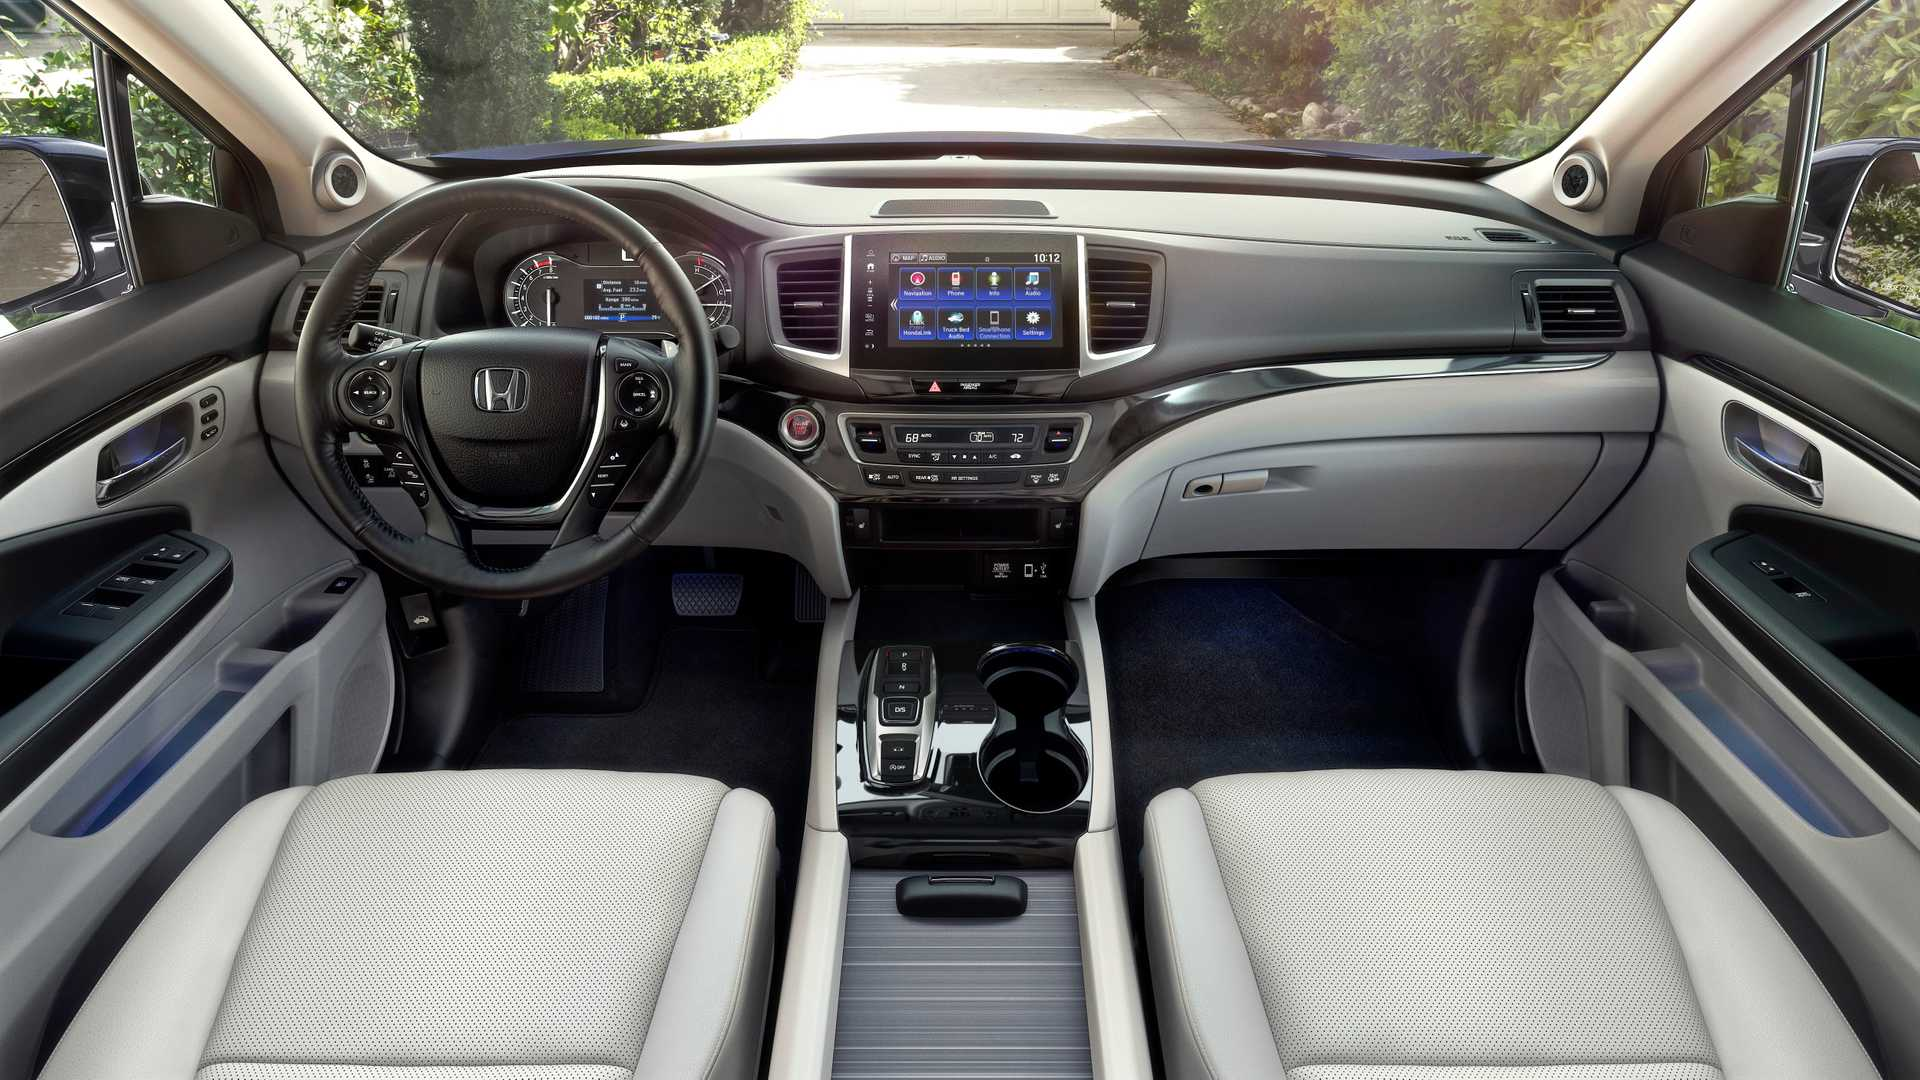 2020 Honda Ridgeline Specs and Review